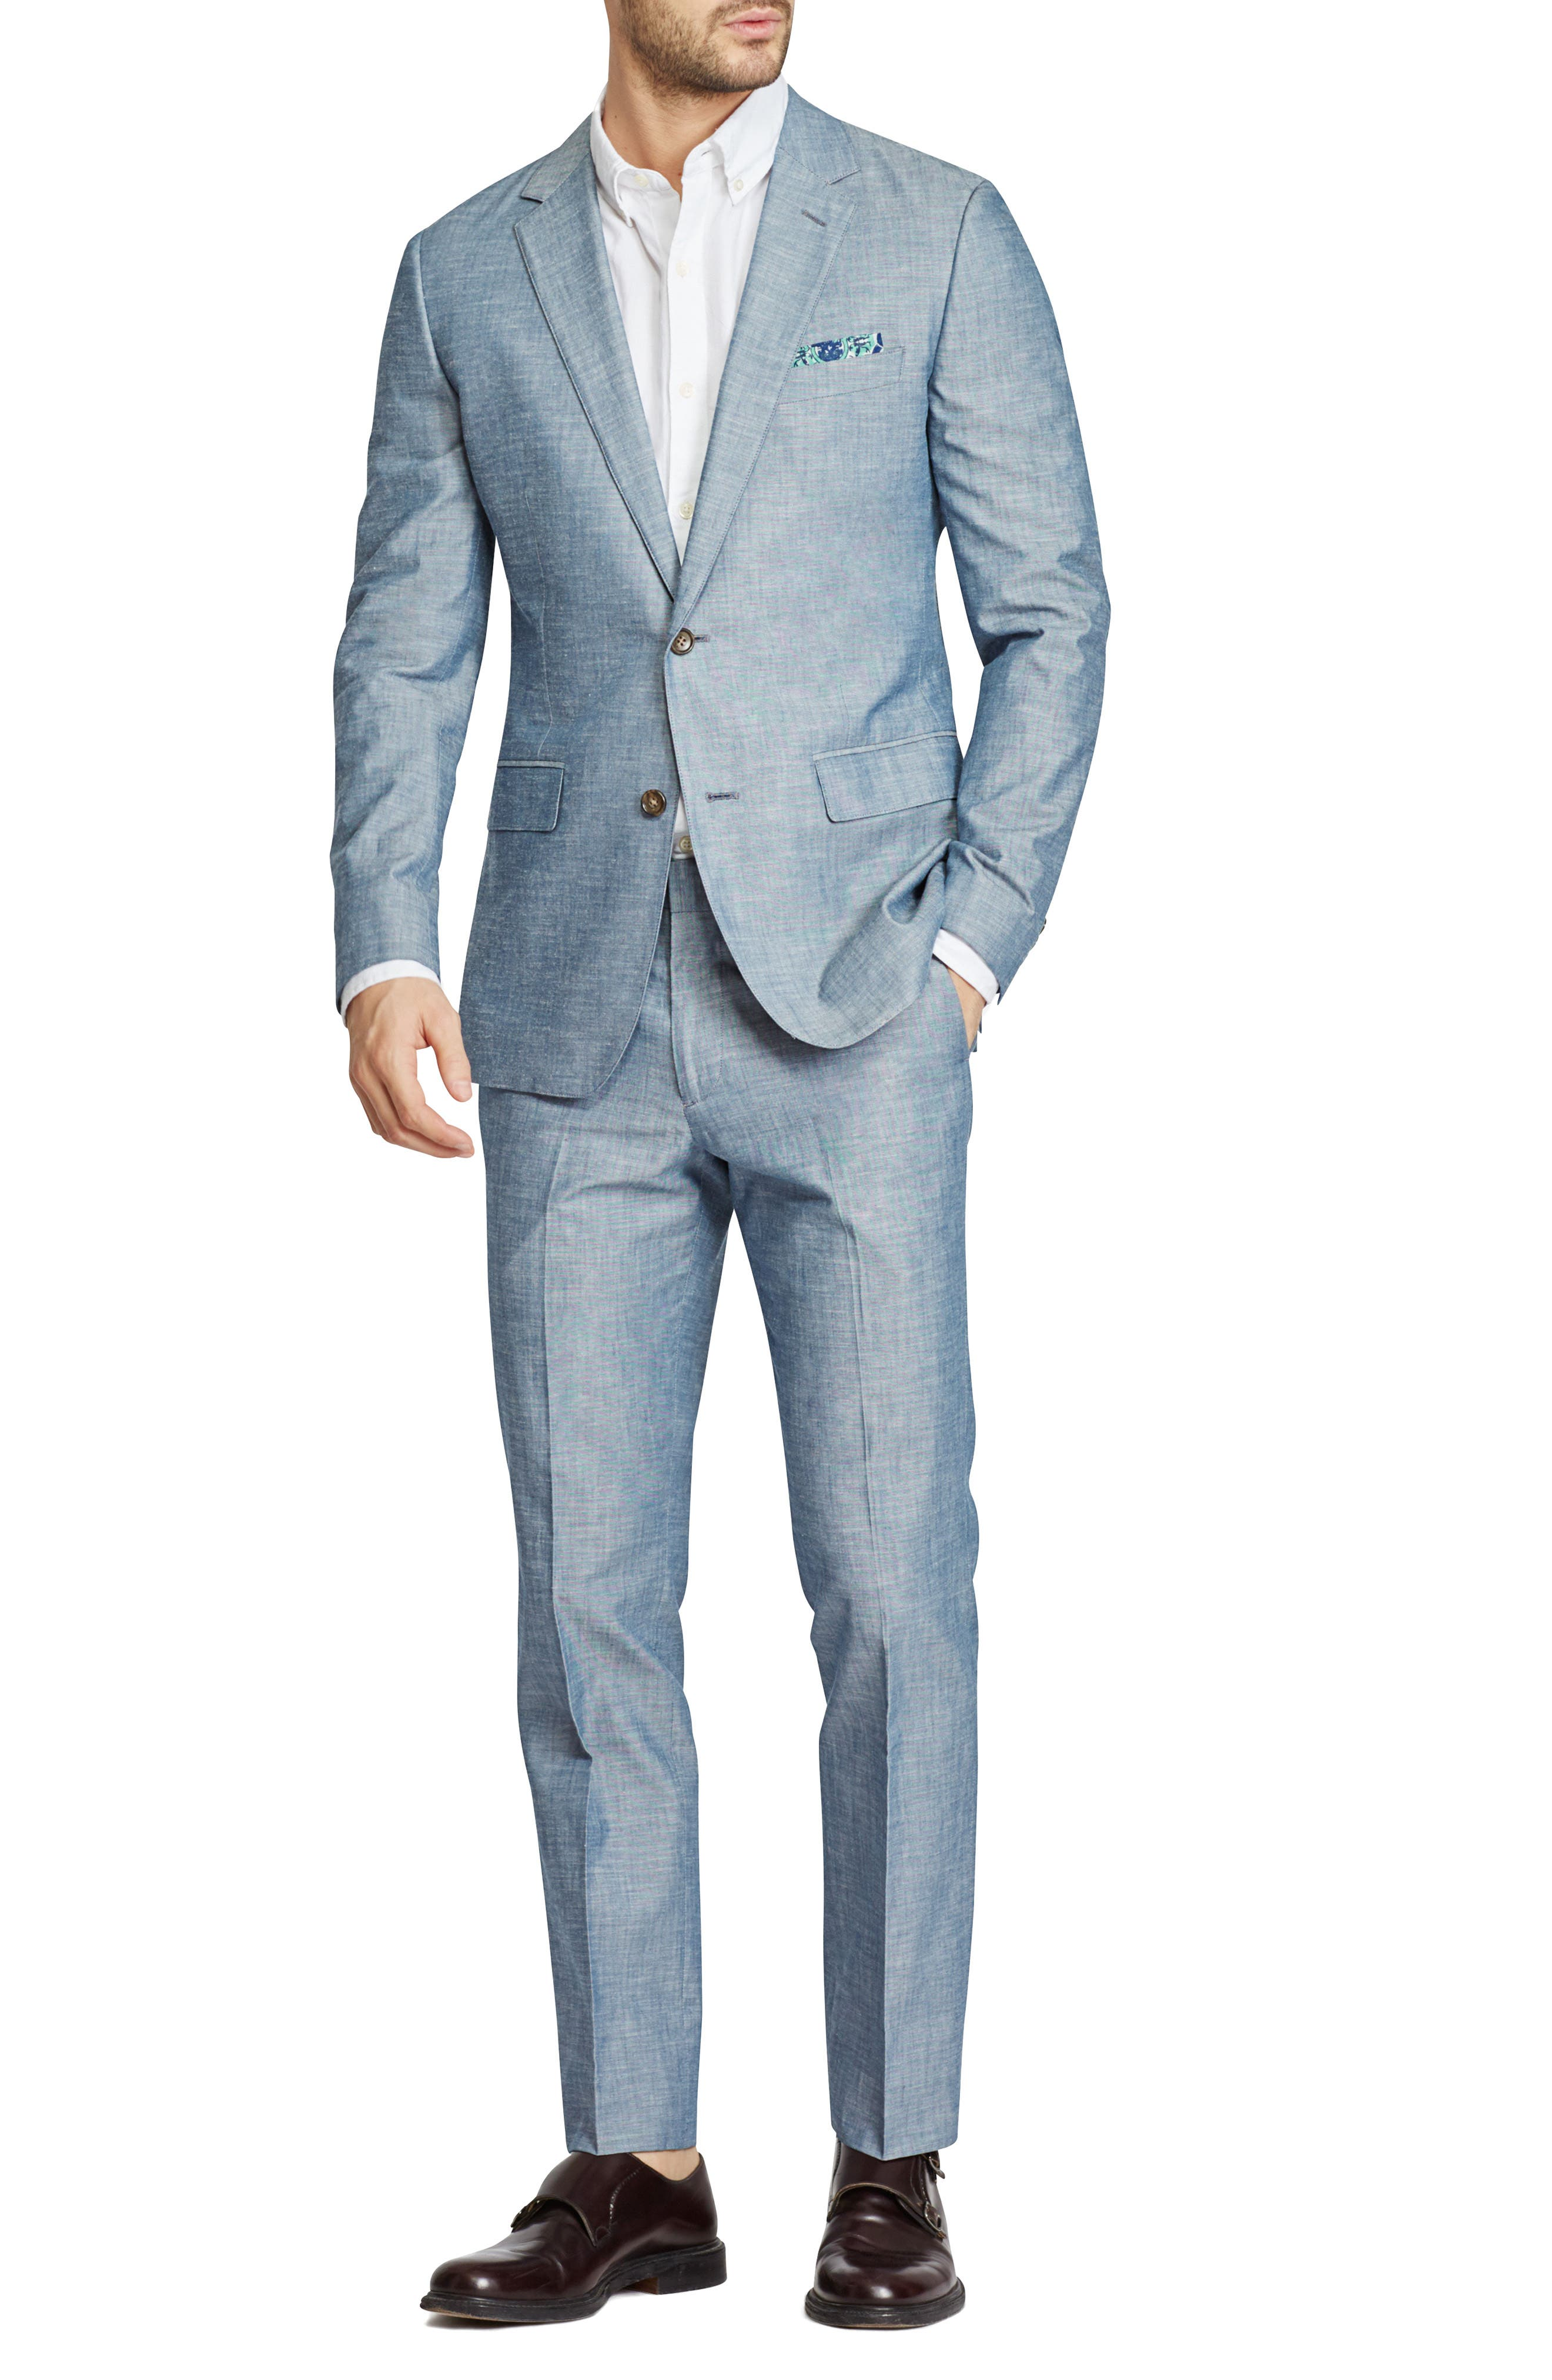 BONOBOS Flat Front Solid Cotton Trousers, Main, color, SOLID BLUE